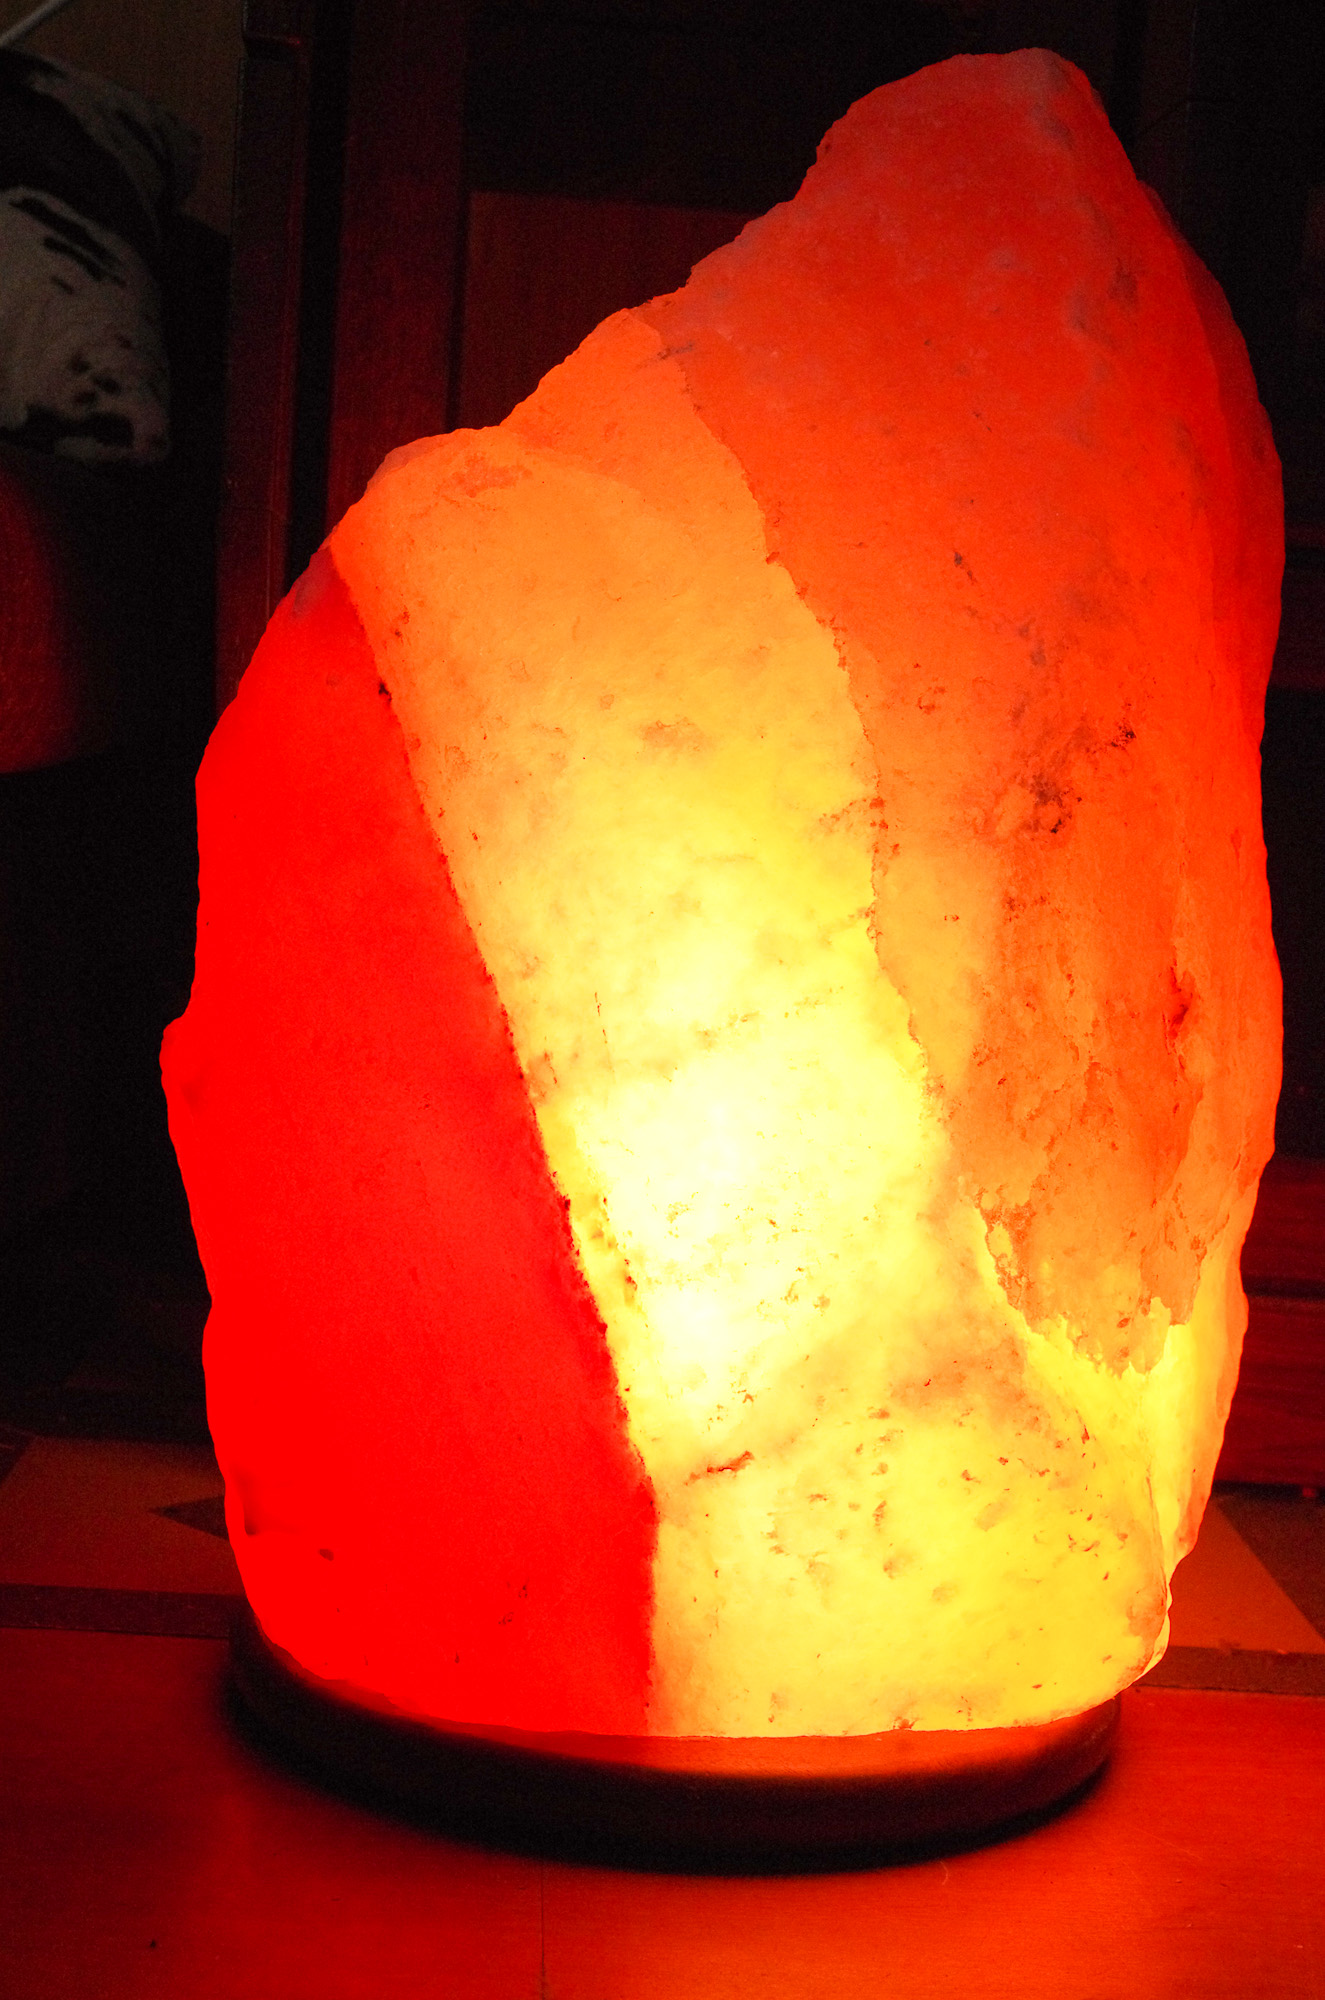 Meridian Peak Hypnosis Himalayan Salt Lamp Benefits & Uses